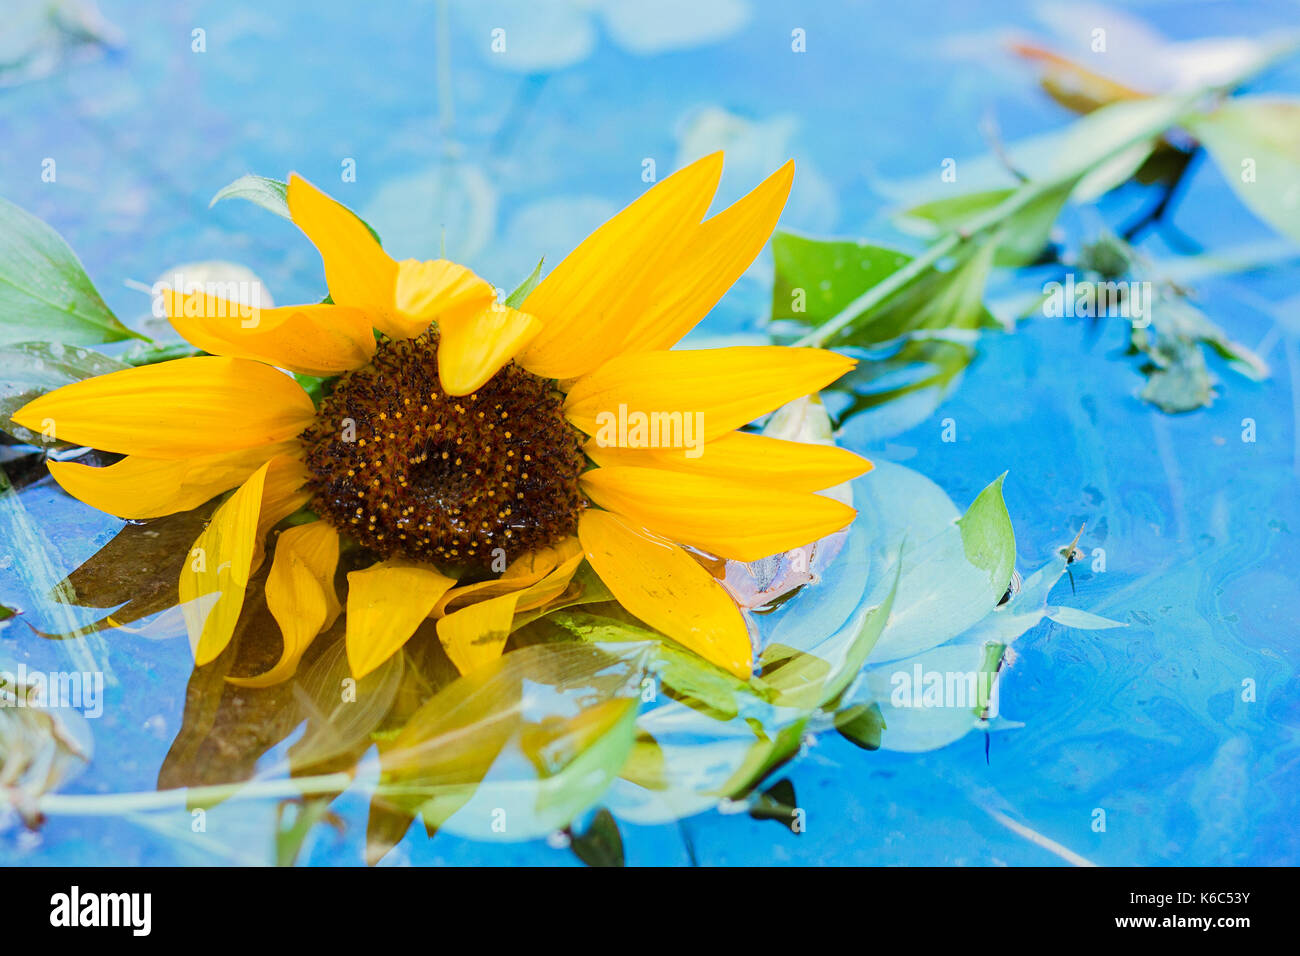 Thrown away sunflower laying in a flooded street puddle - Stock Image